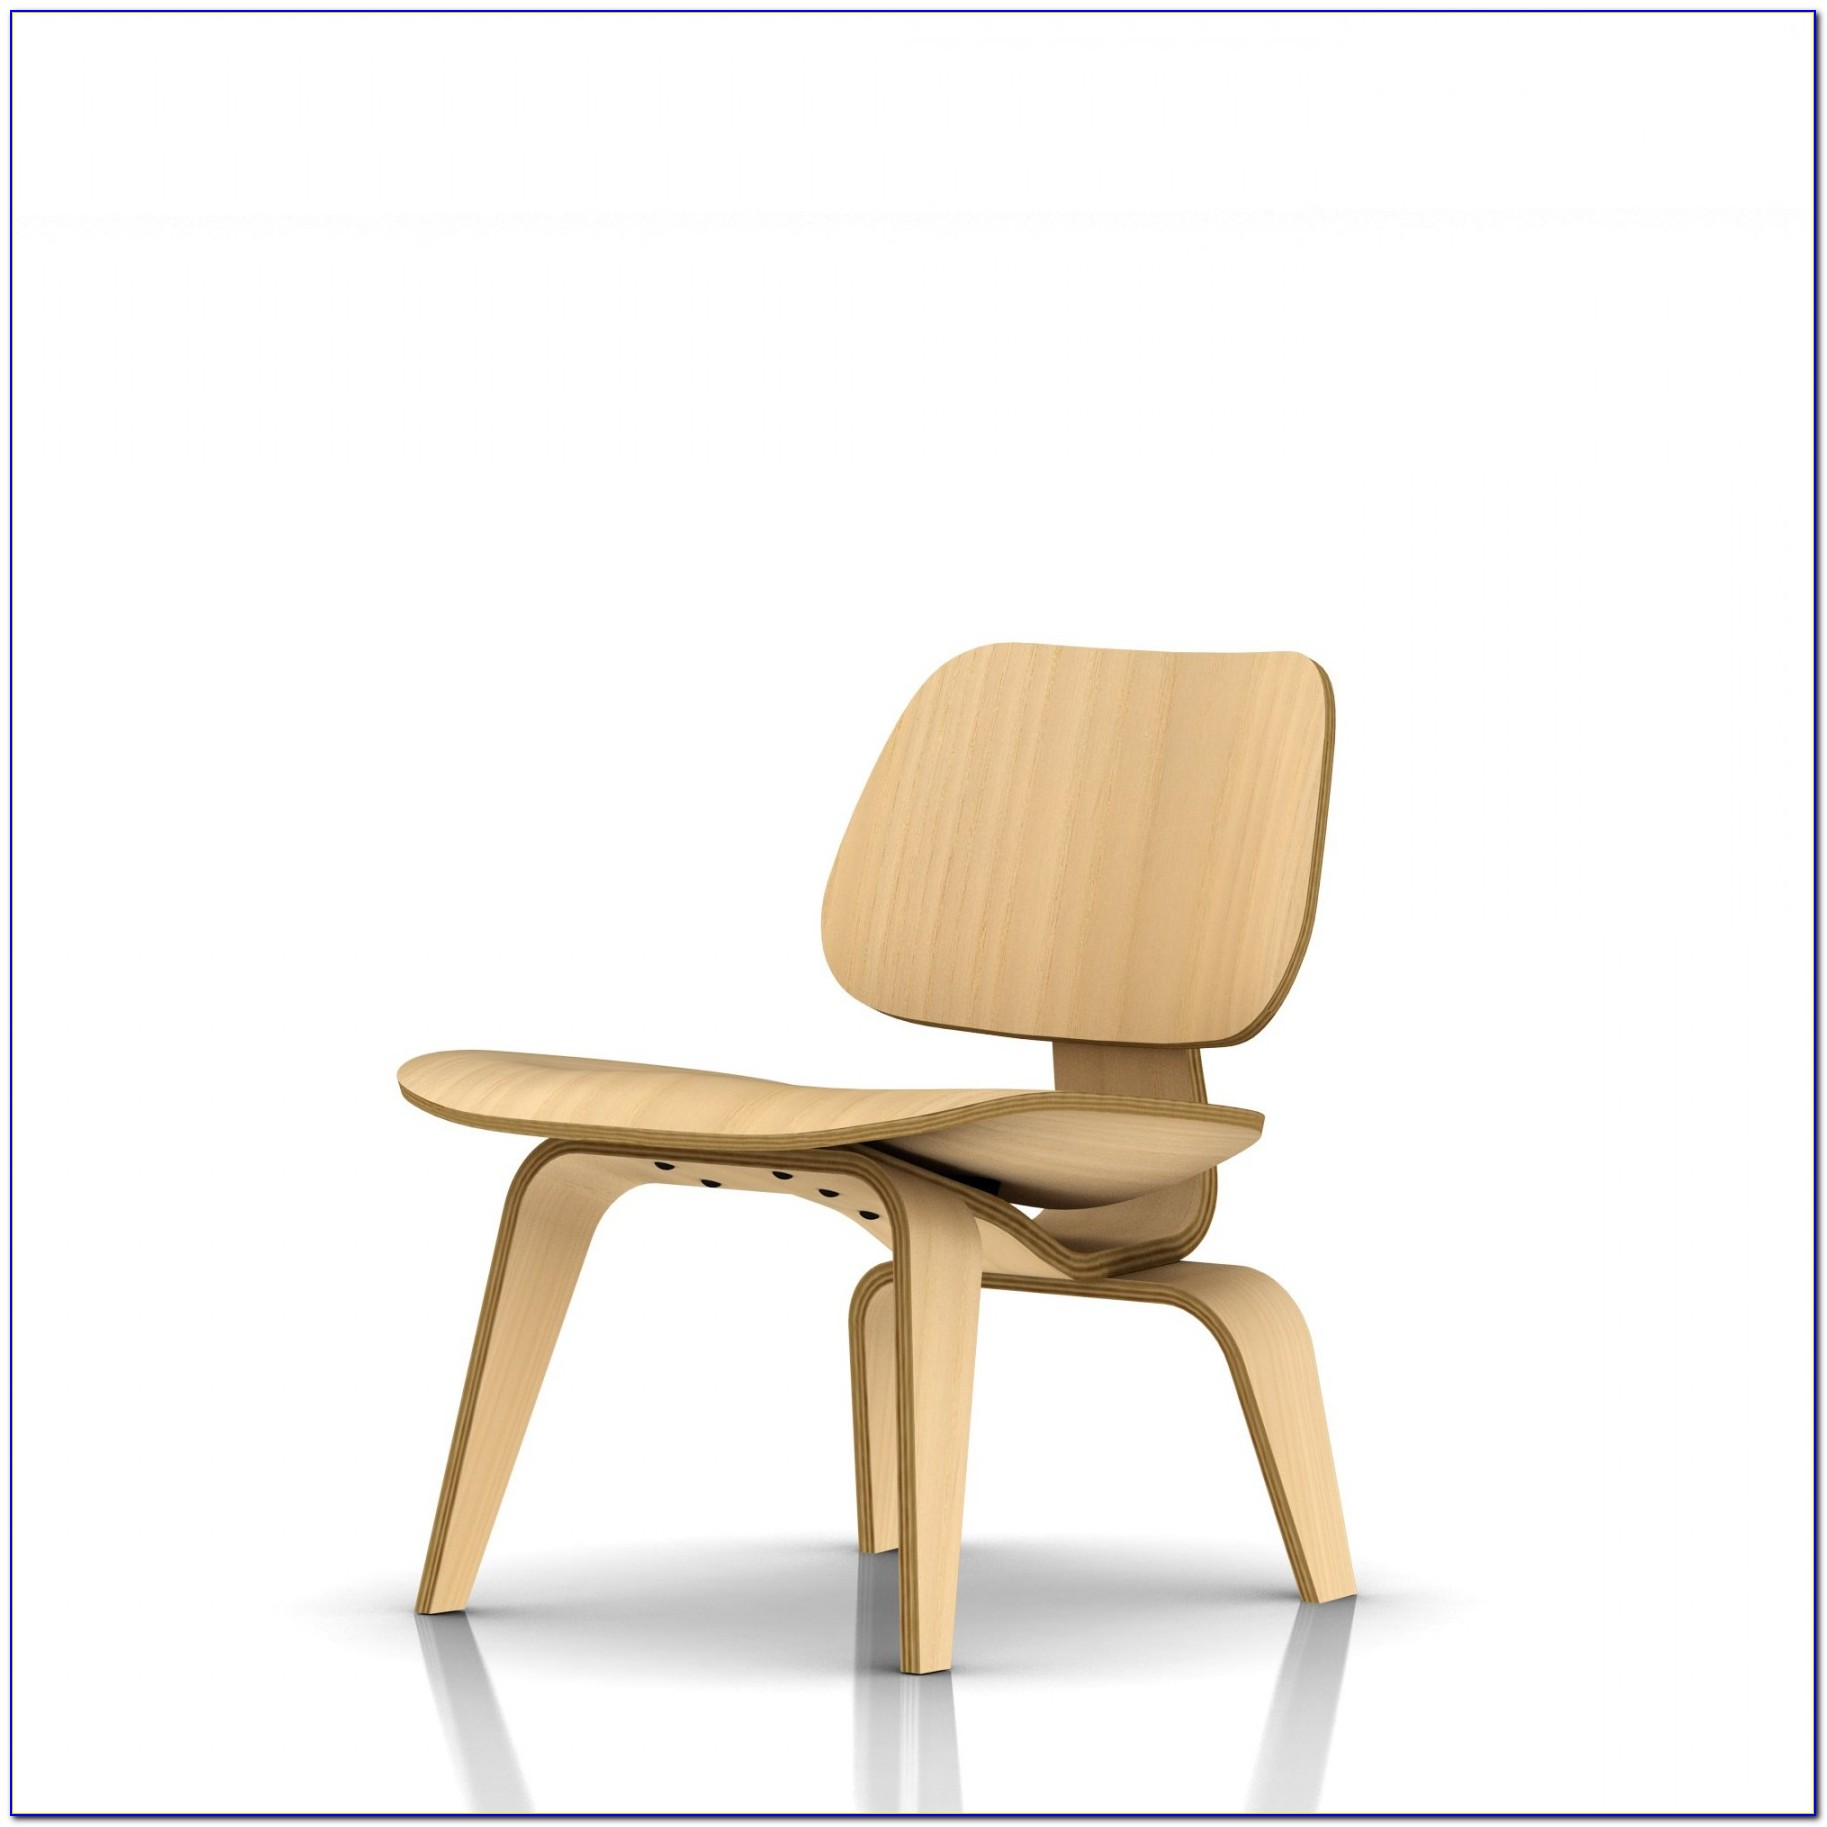 Eames Molded Plywood Chair Reproduction